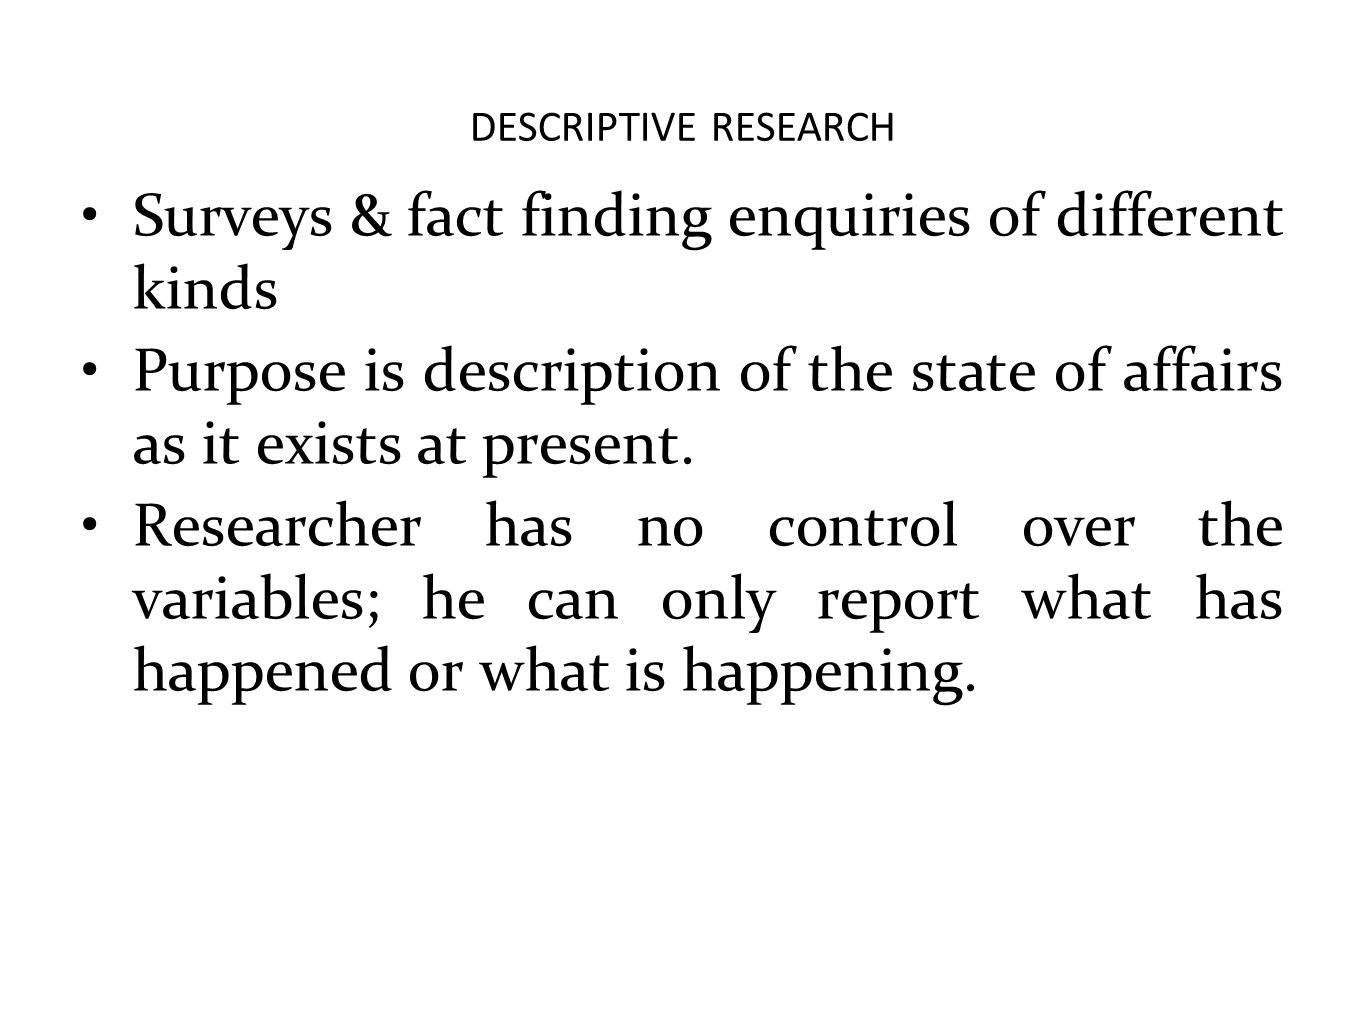 Surveys & fact finding enquiries of different kinds